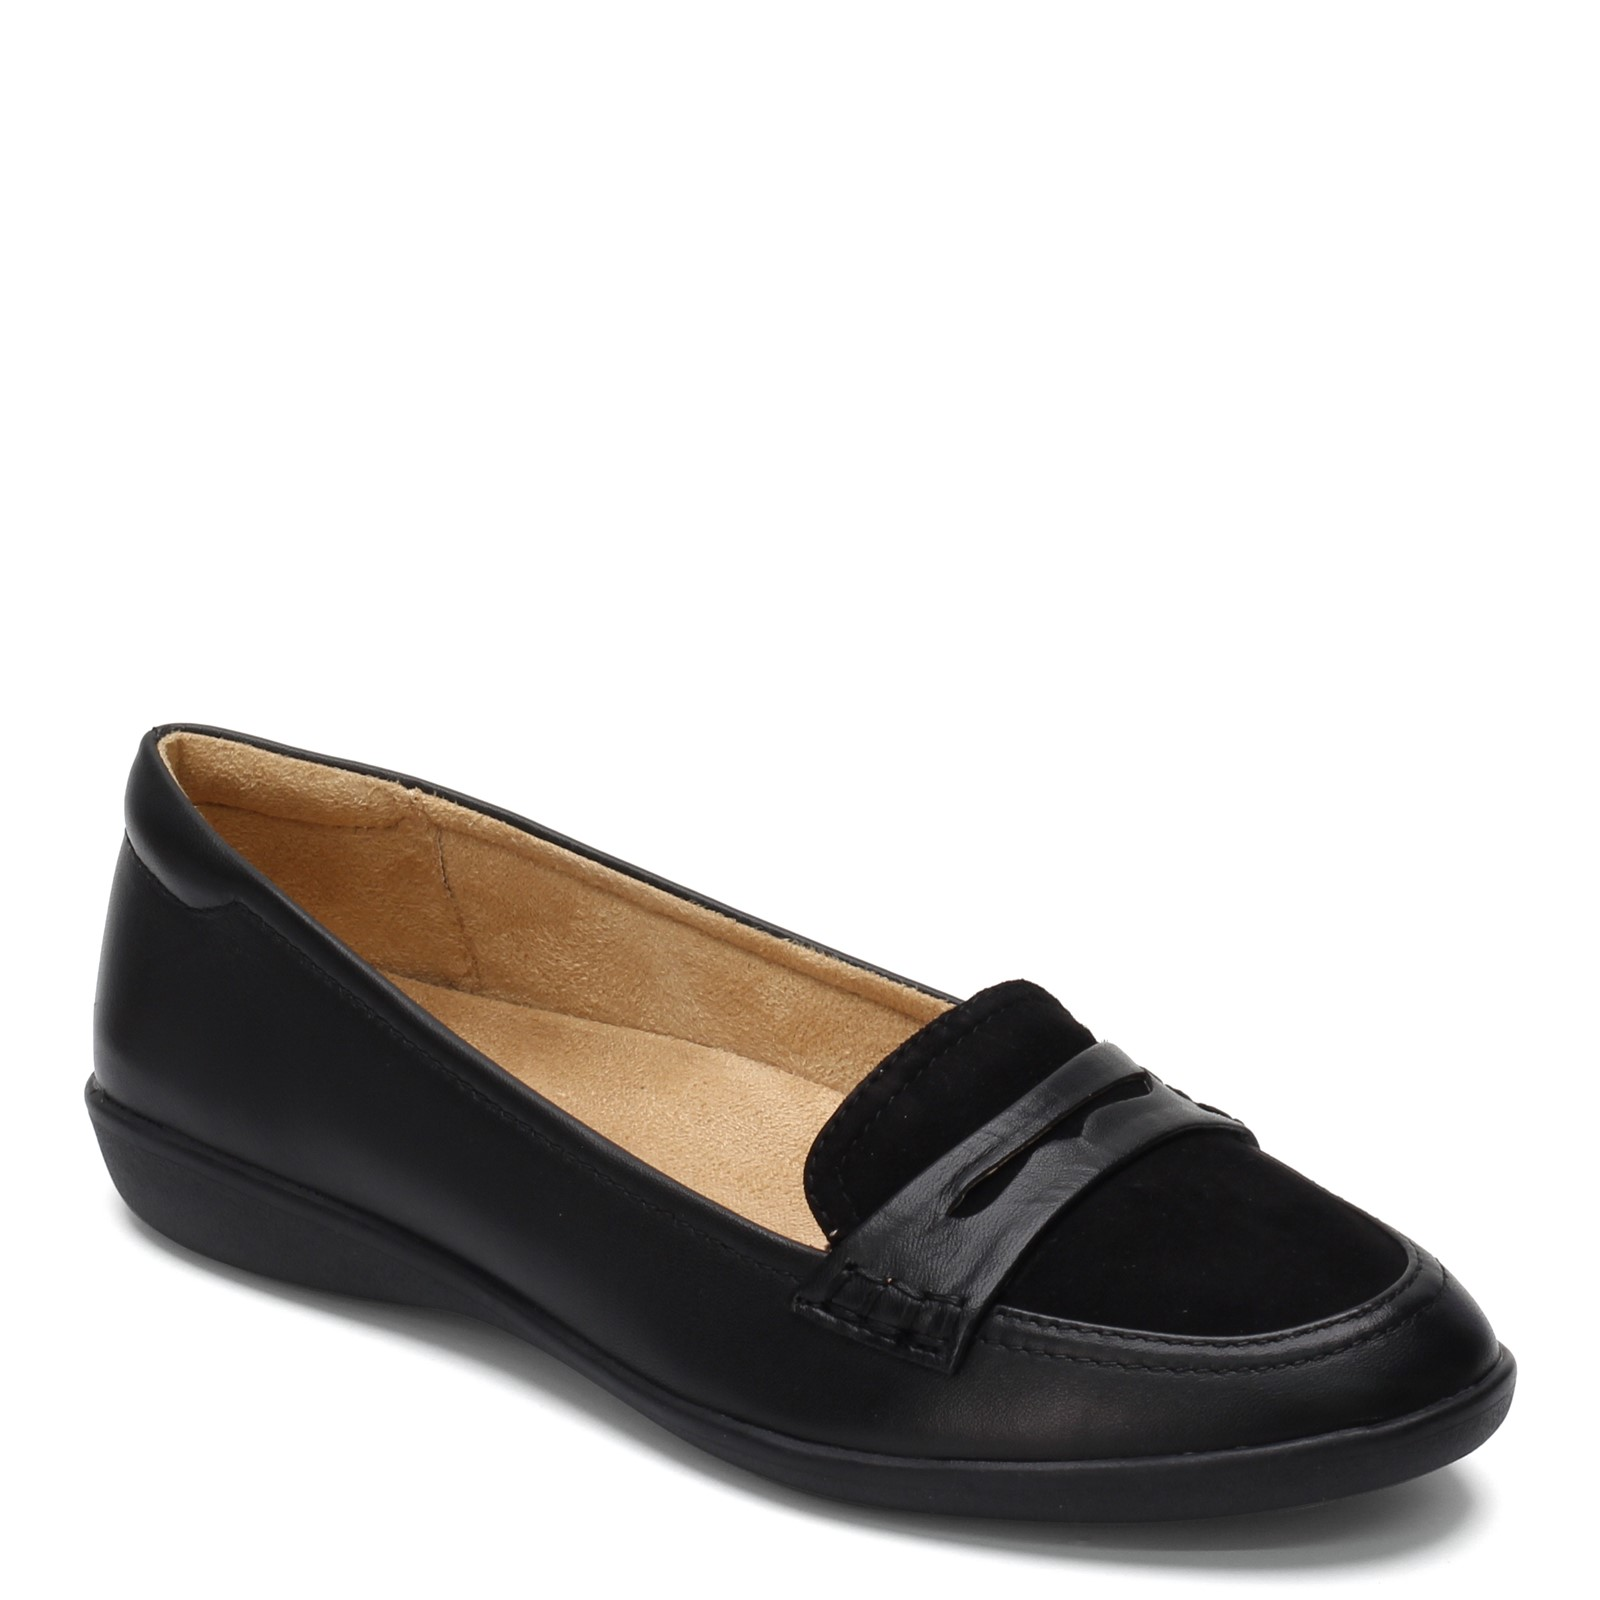 Women's Naturalizer, Finley Flat